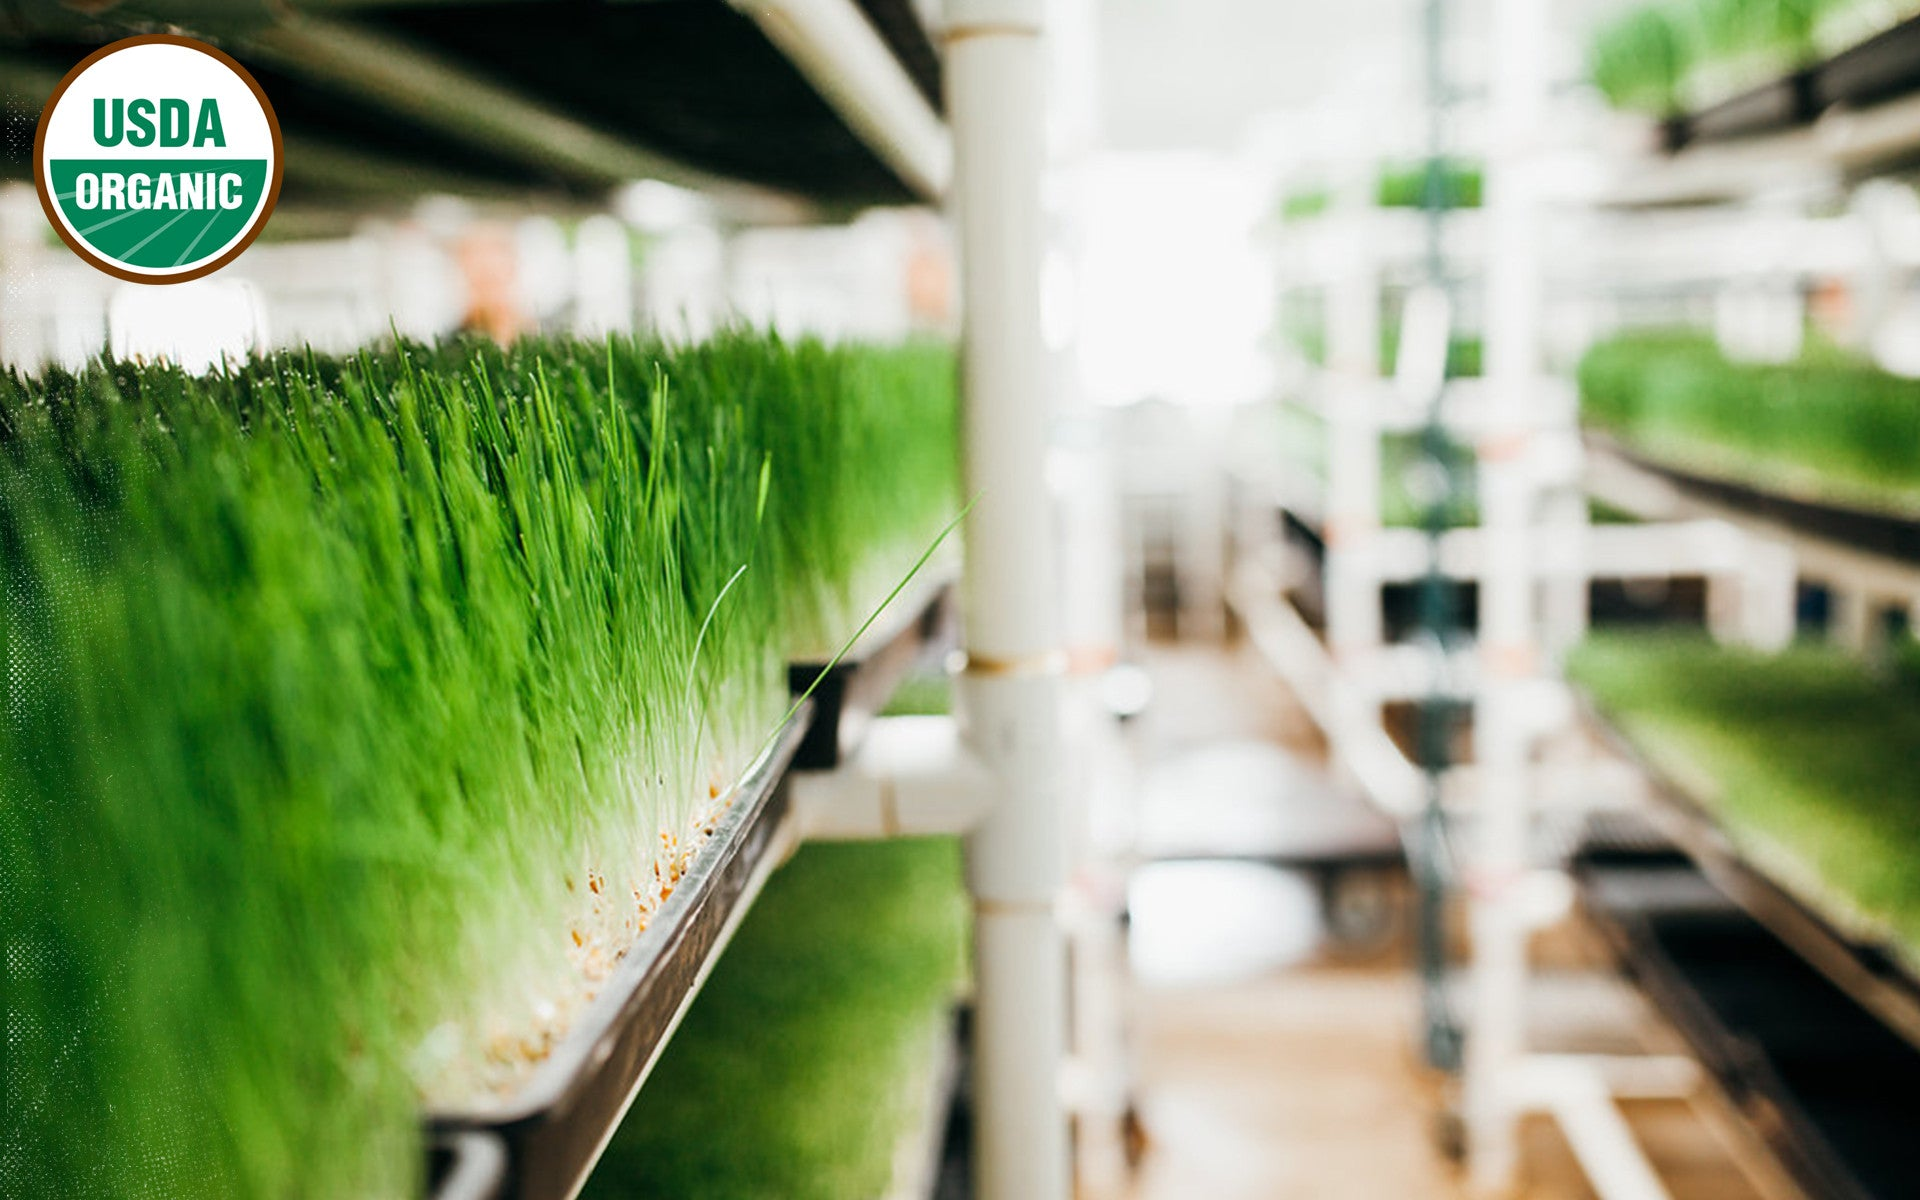 andi's way wheatgrass growing facilities